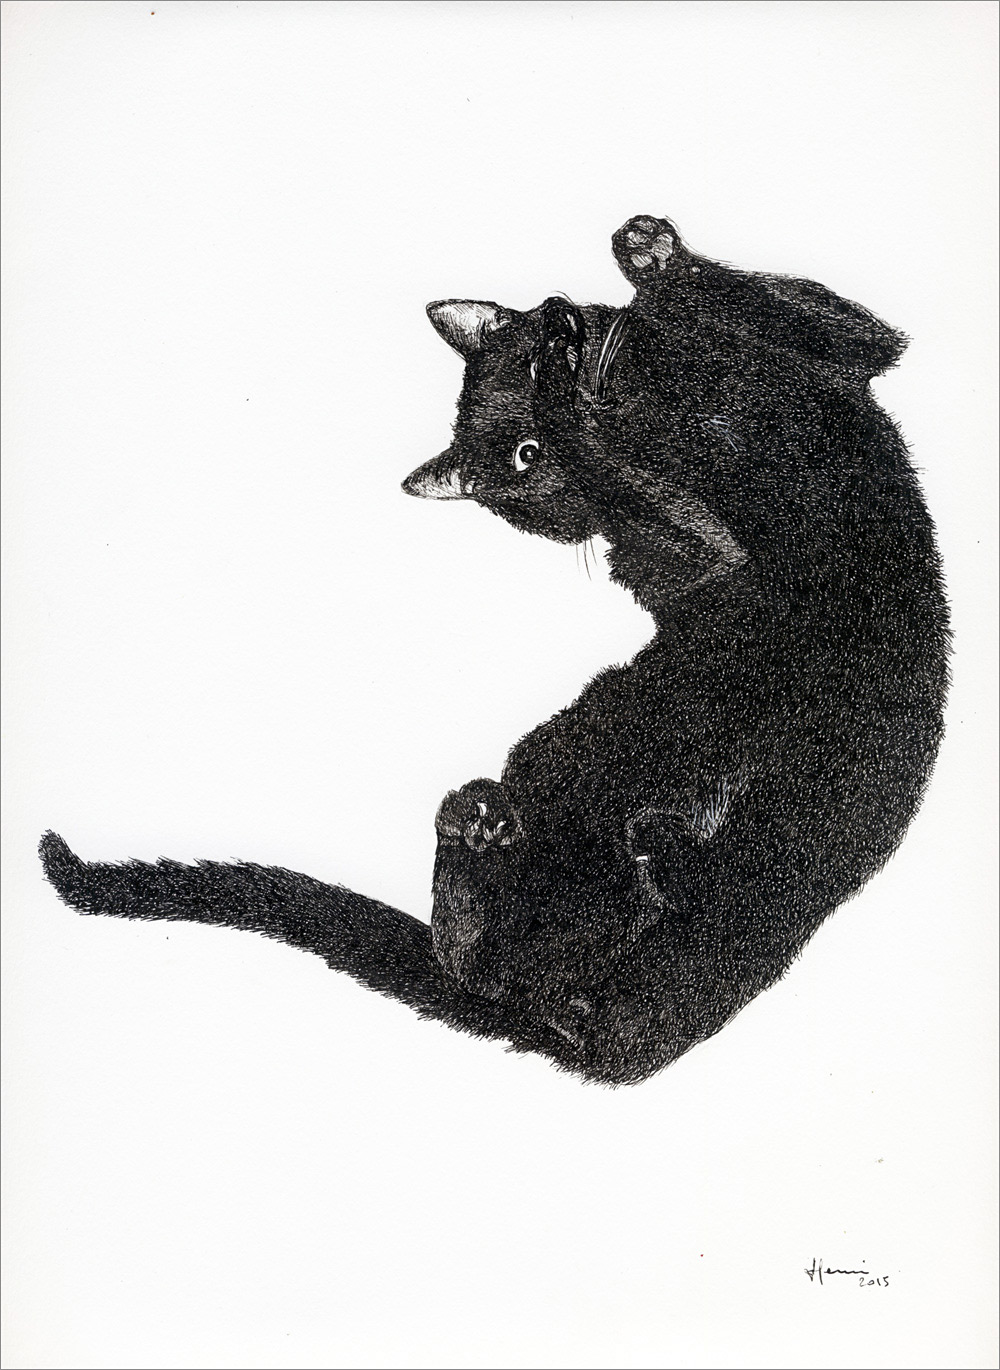 Henri Blanc dessins à la plume - L'invitation au câlin chat cat ink drawing